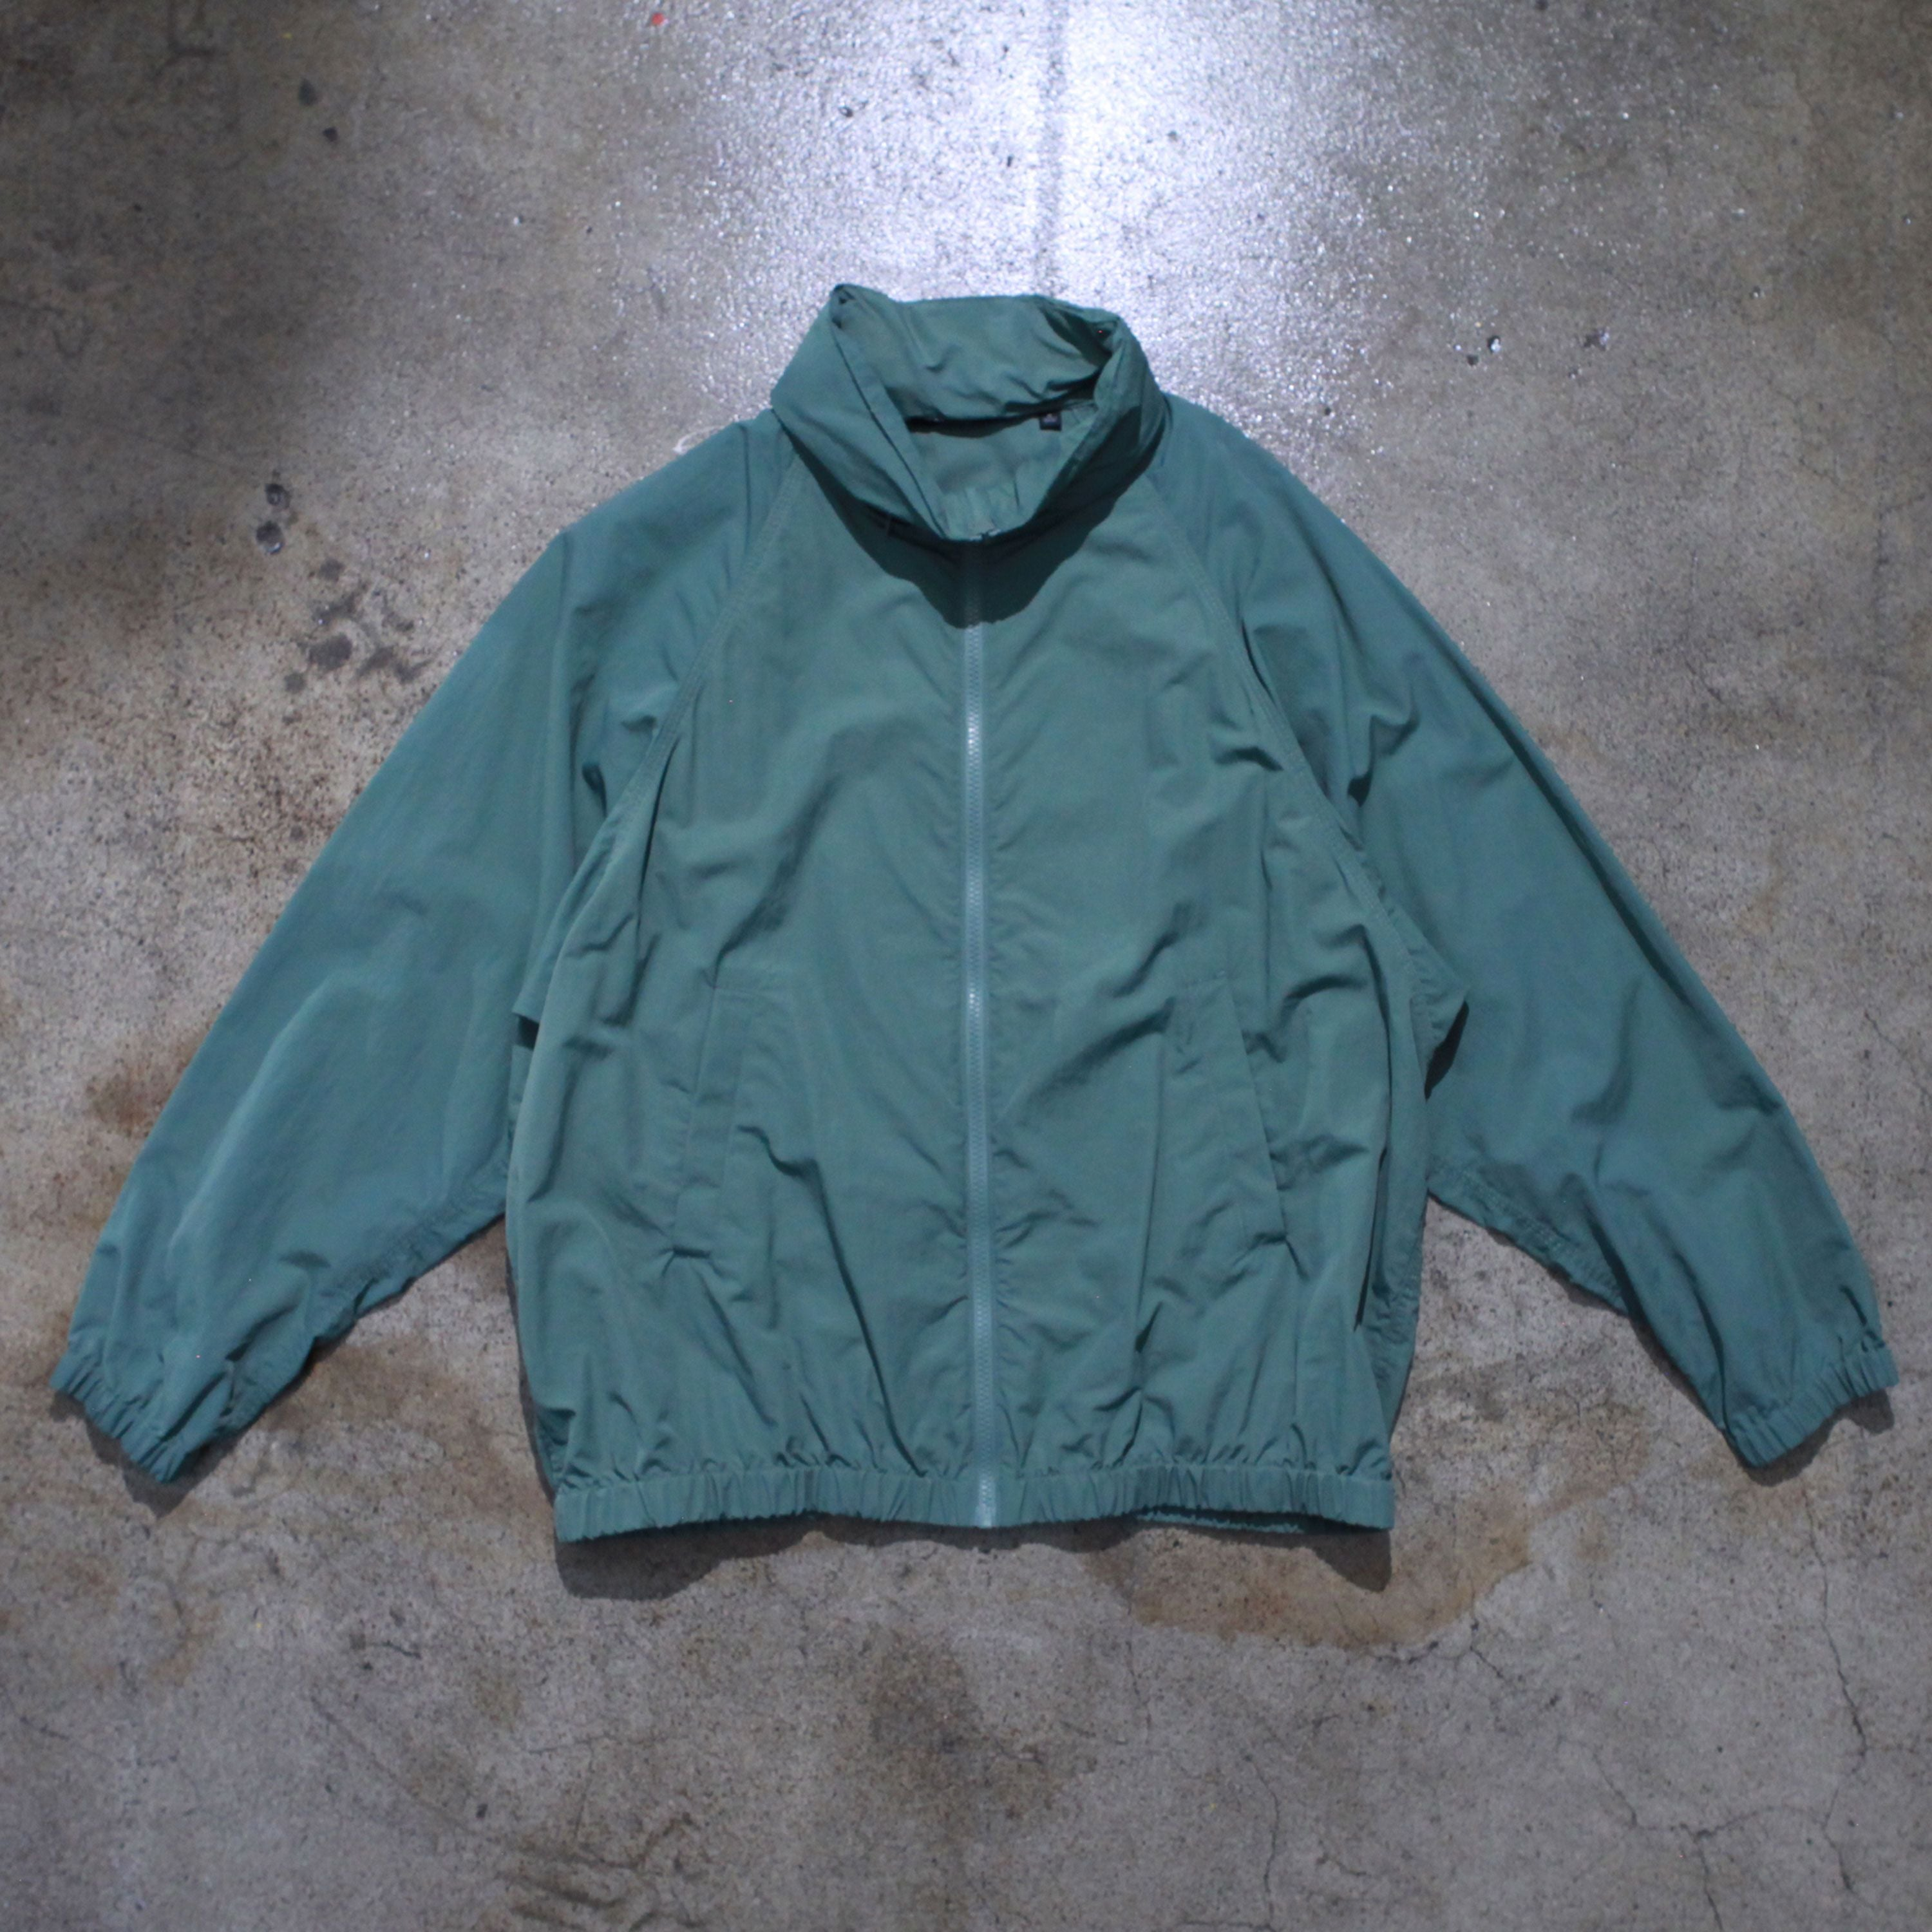 Vintage Light Nylon Zip Up Jacket